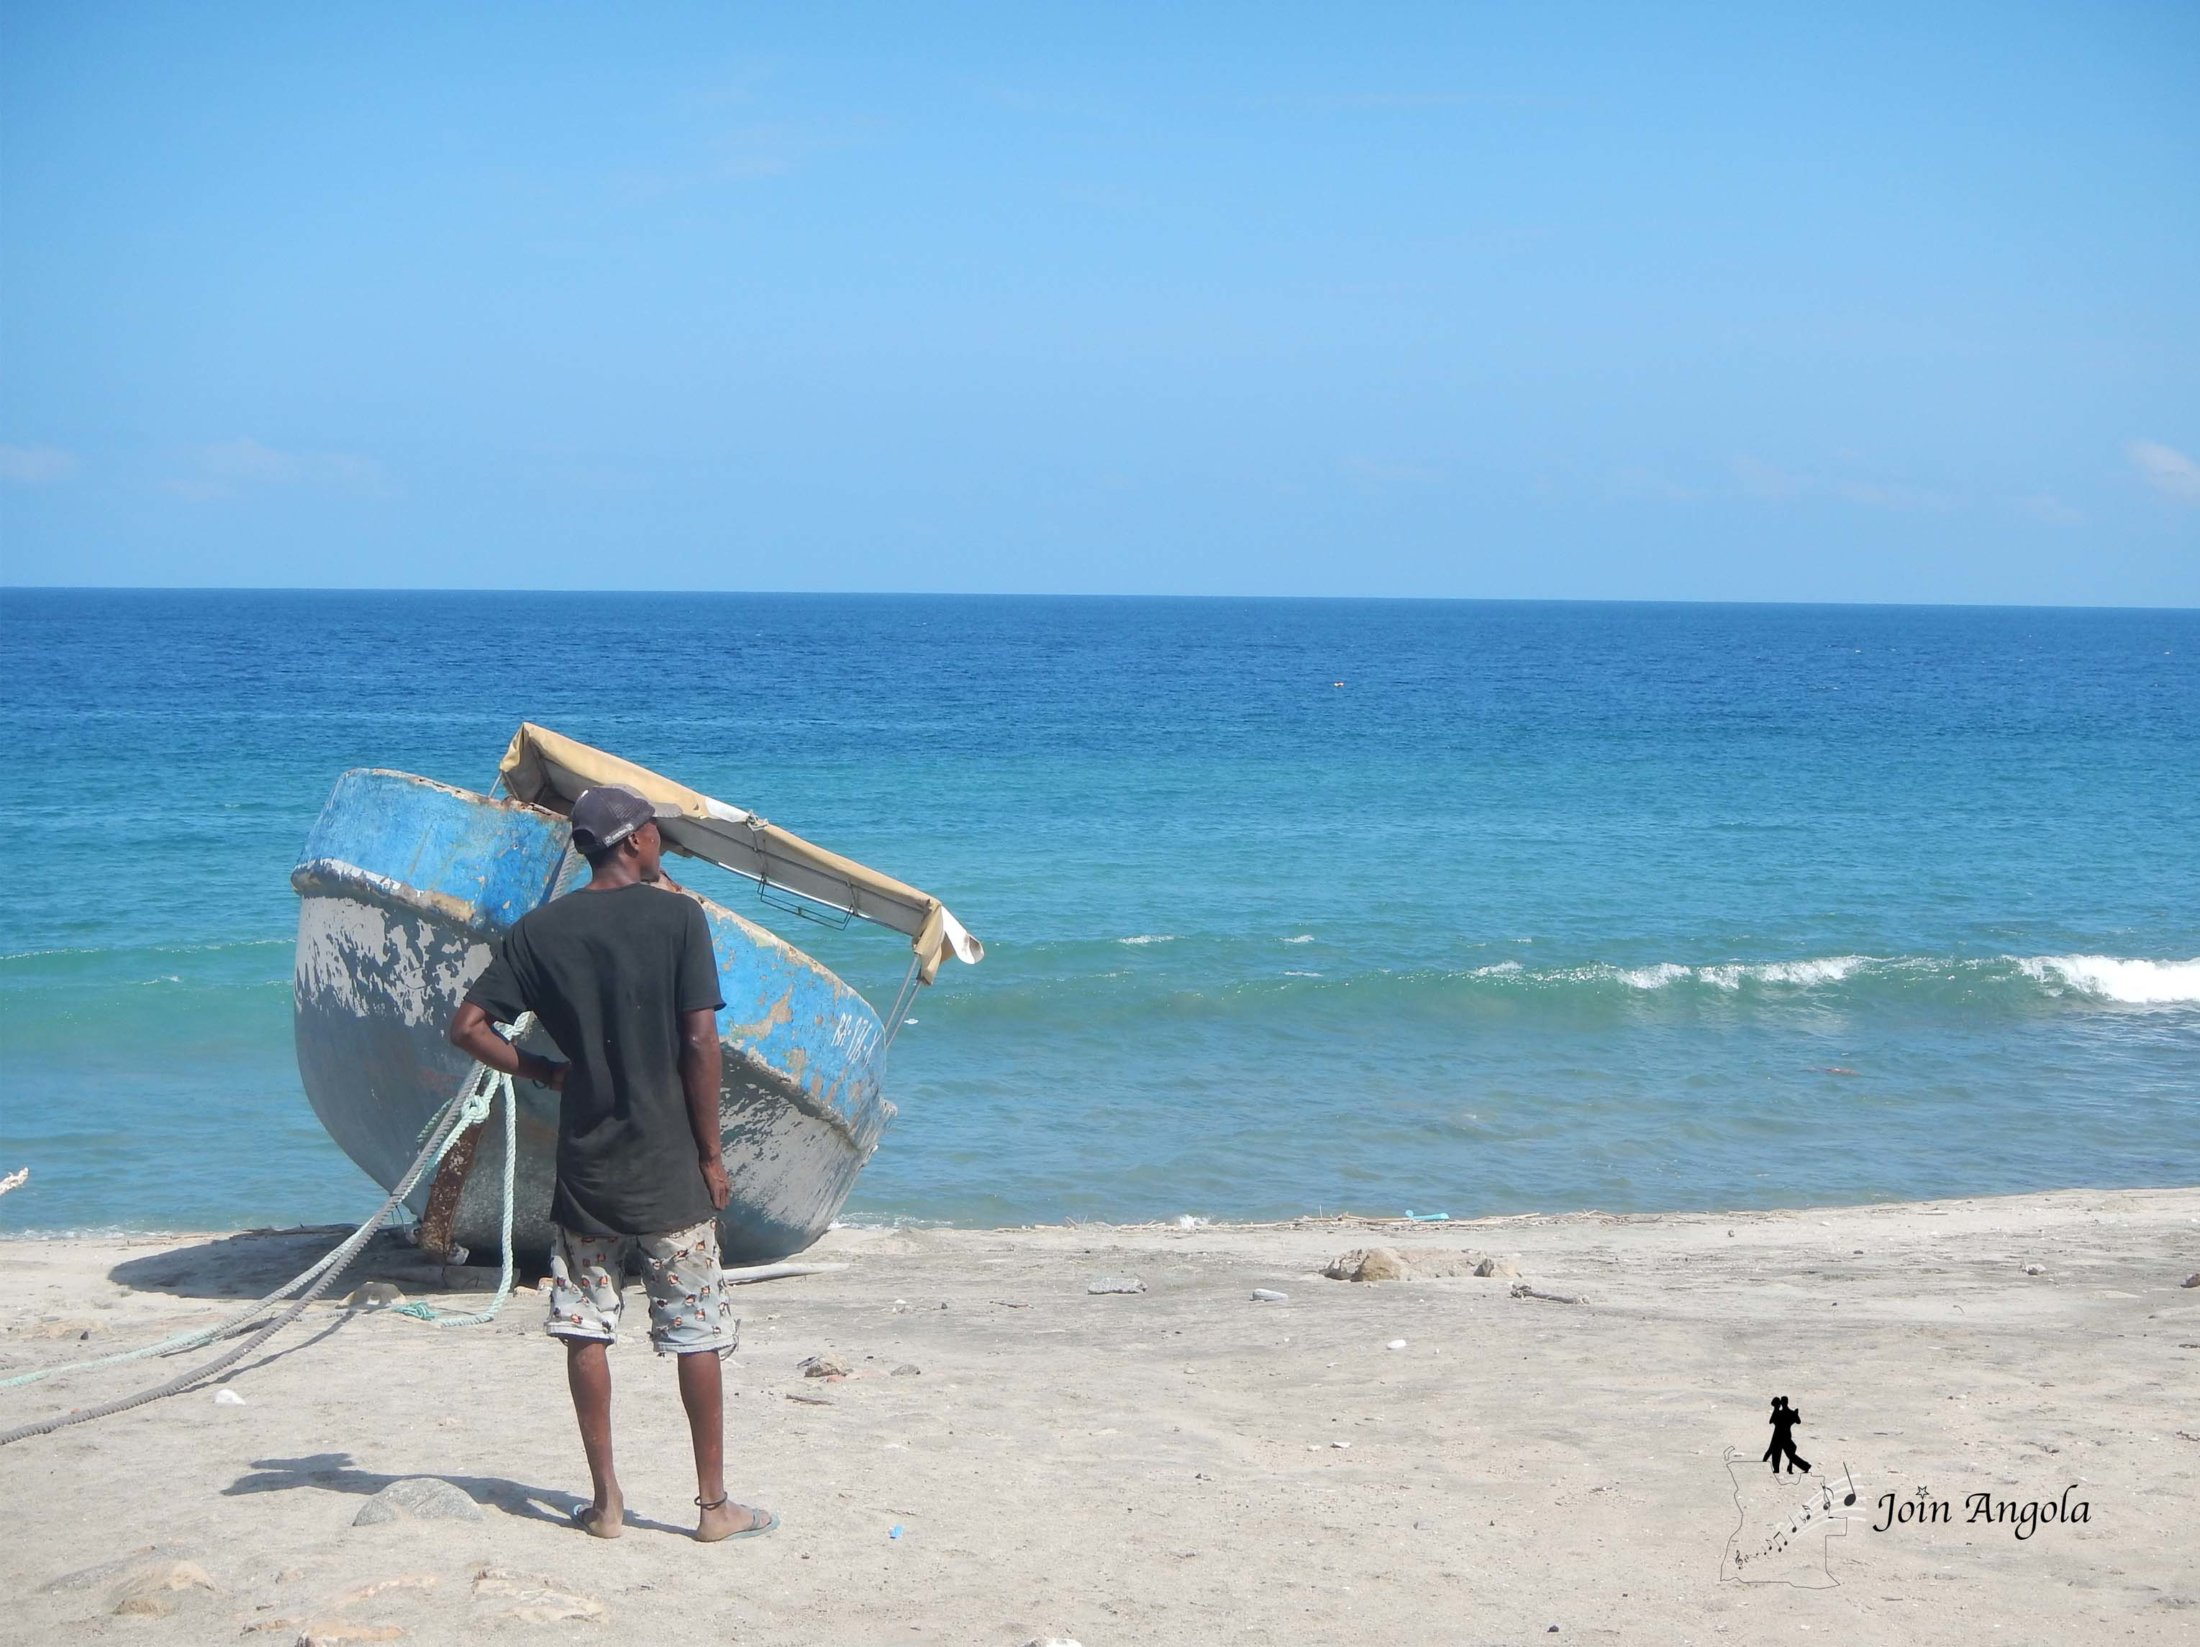 Getting ready to go fishing on the beach of Meva, located halfway between Benguela and Moçamedes.